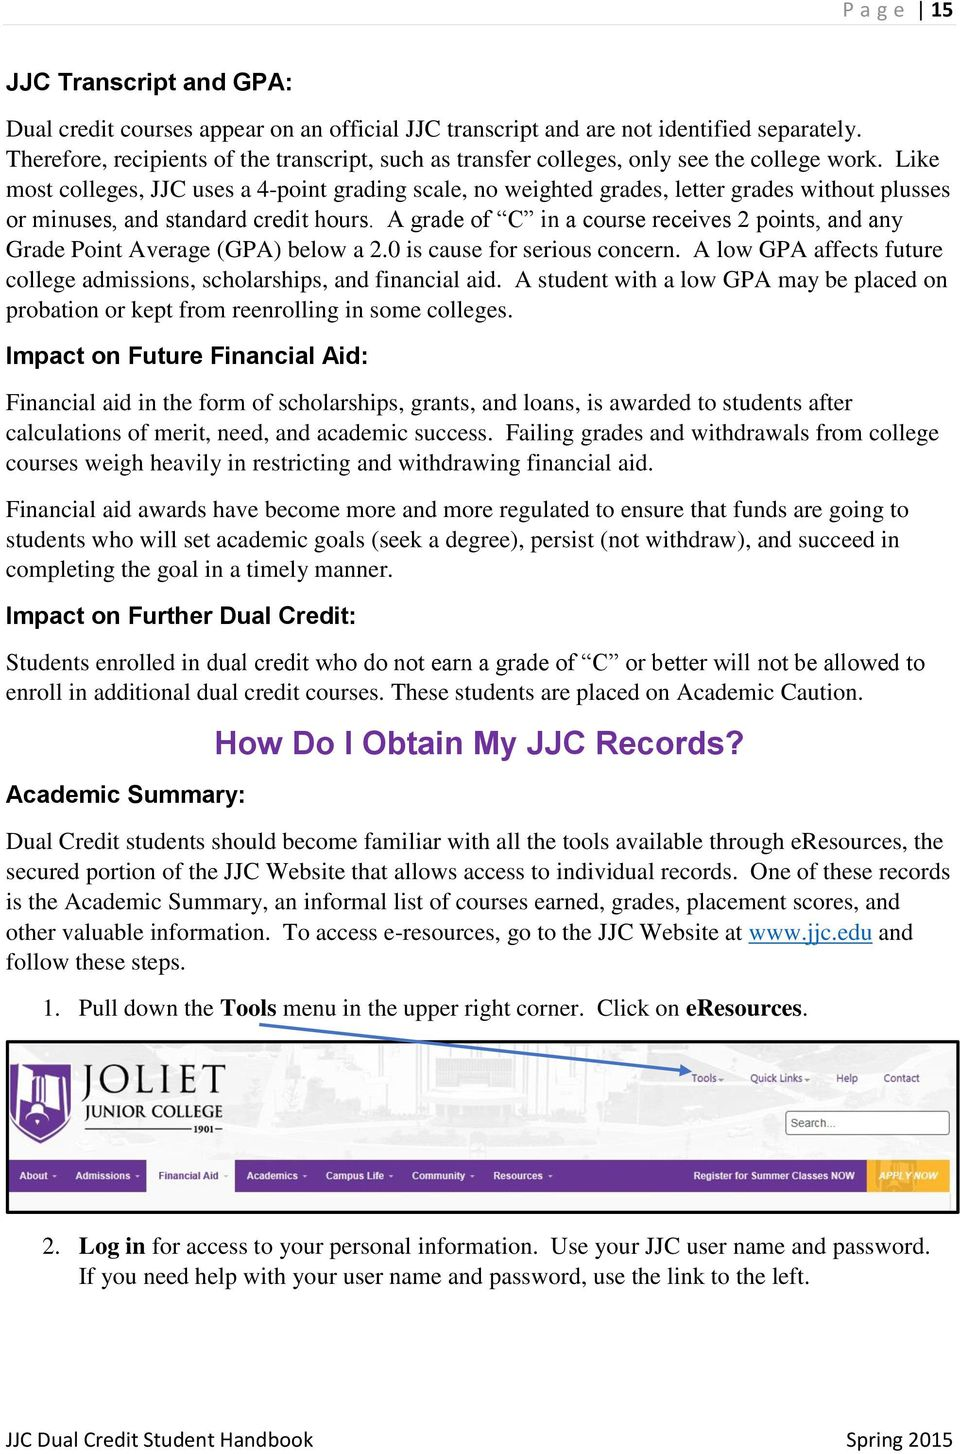 Like most colleges, JJC uses a 4-point grading scale, no weighted grades, letter grades without plusses or minuses, and standard credit hours.